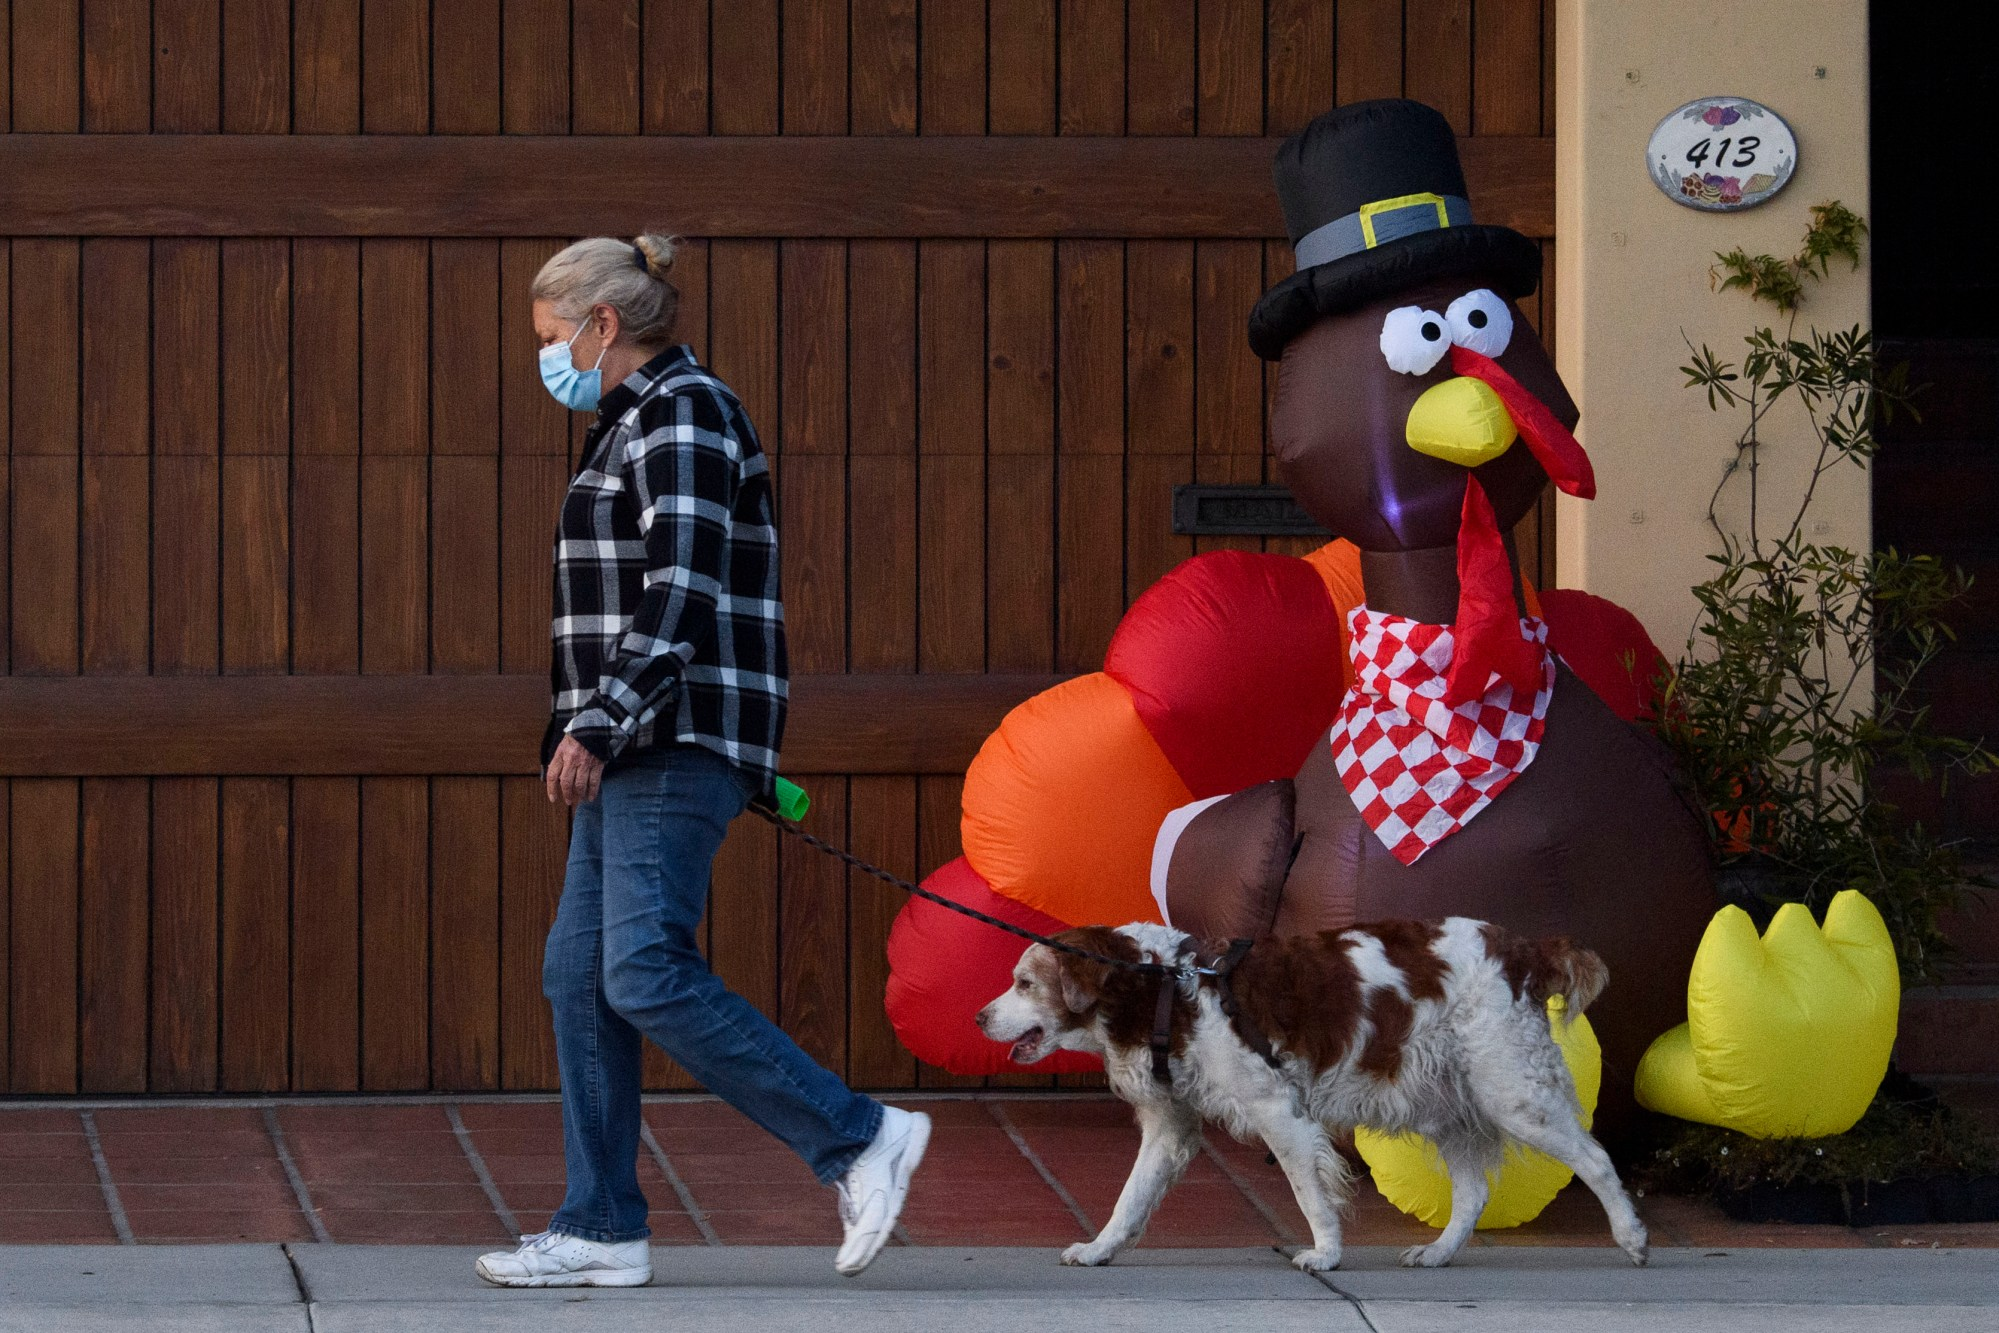 A pedestrian wearing a face mask walks their dog past an inflatable turkey in Manhattan Beach ahead of the Thanksgiving holiday on Nov. 21, 2020. (PATRICK T. FALLON/AFP via Getty Images)